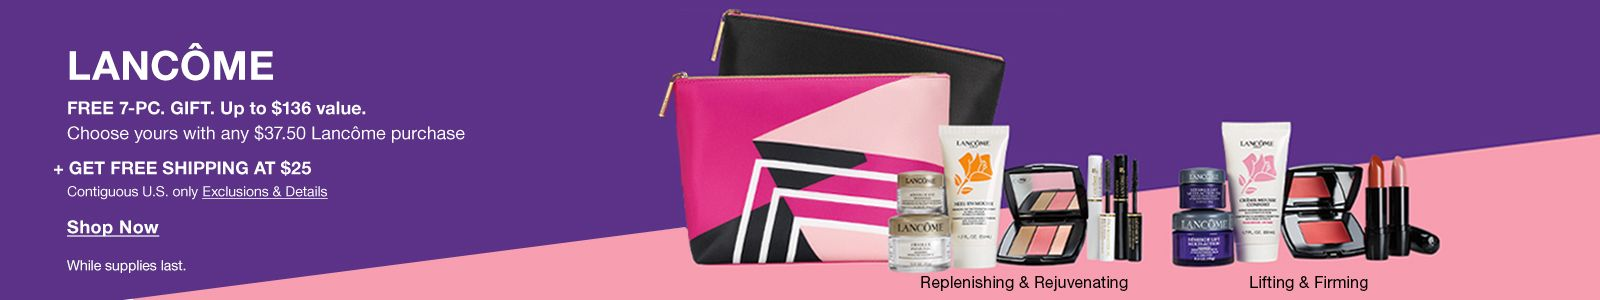 Lancome, Free 7-Piece Gift up to $136 value, Choose yours with any $37.50 Lancome purchase + Get Free Shipping at $25, Exclusions and Details, Shop Now, While supplies last